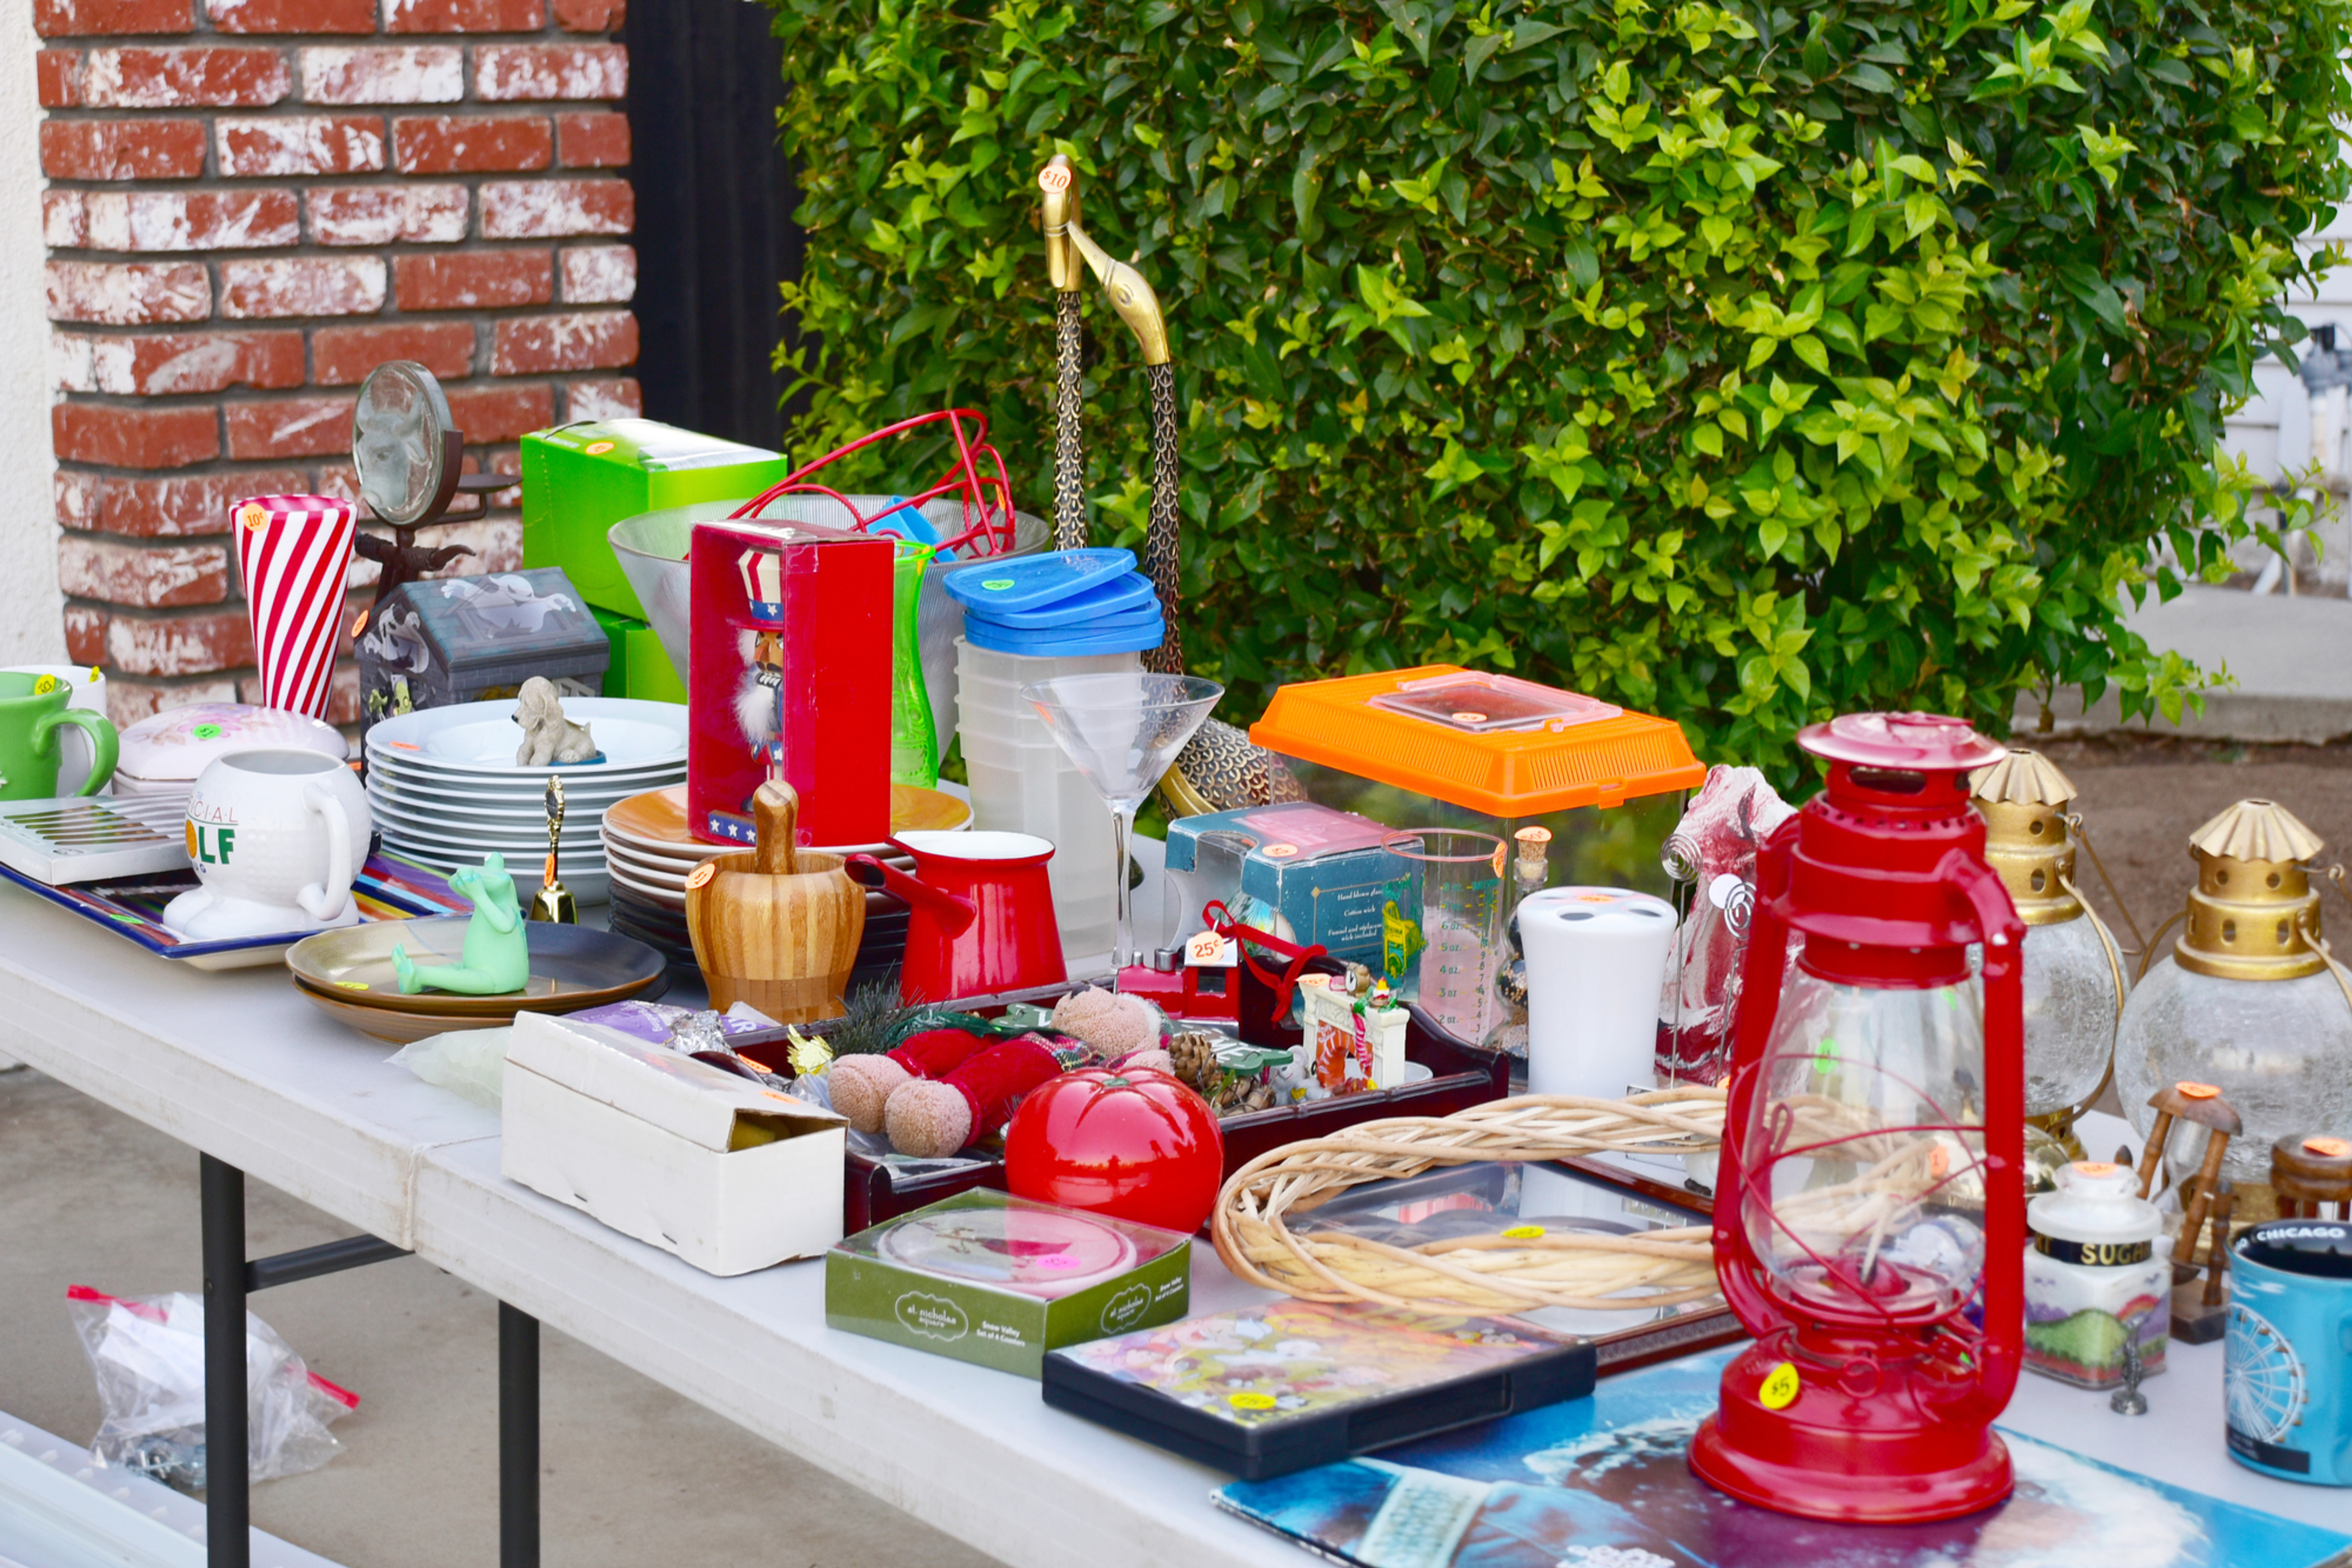 Community Tag Sale Seller Space